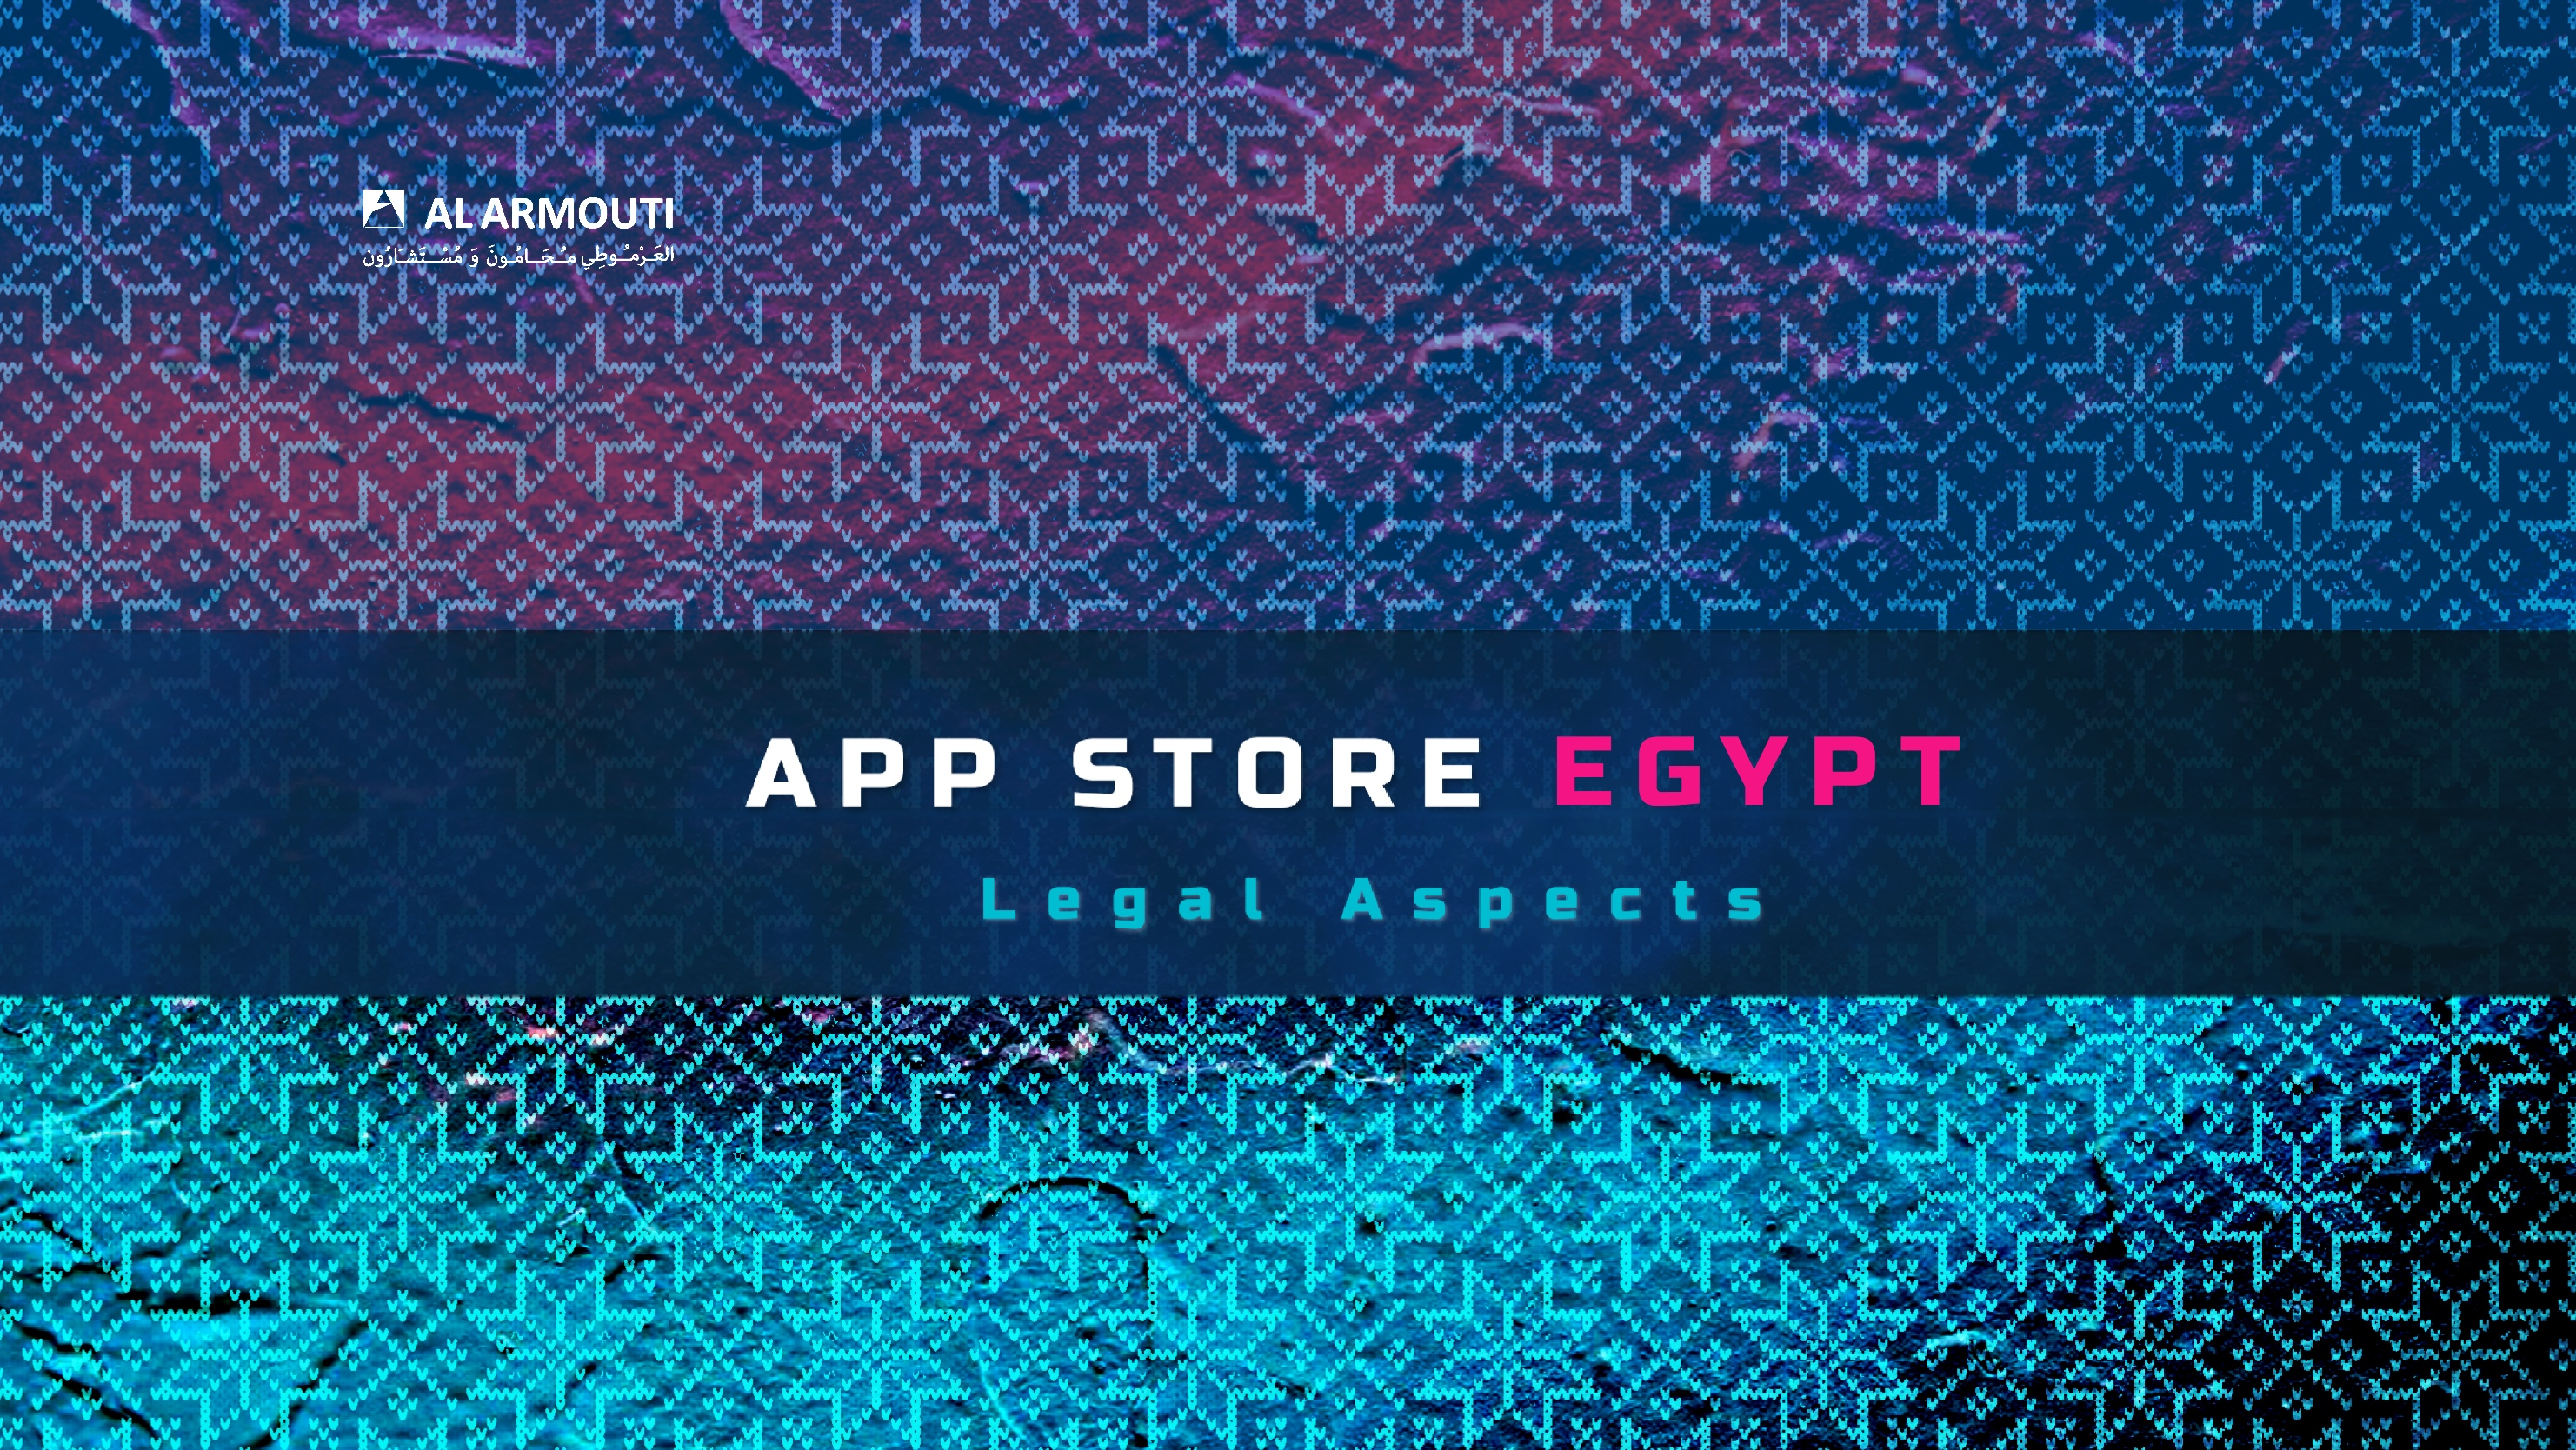 The Egyptian App Store: Legal Aspects